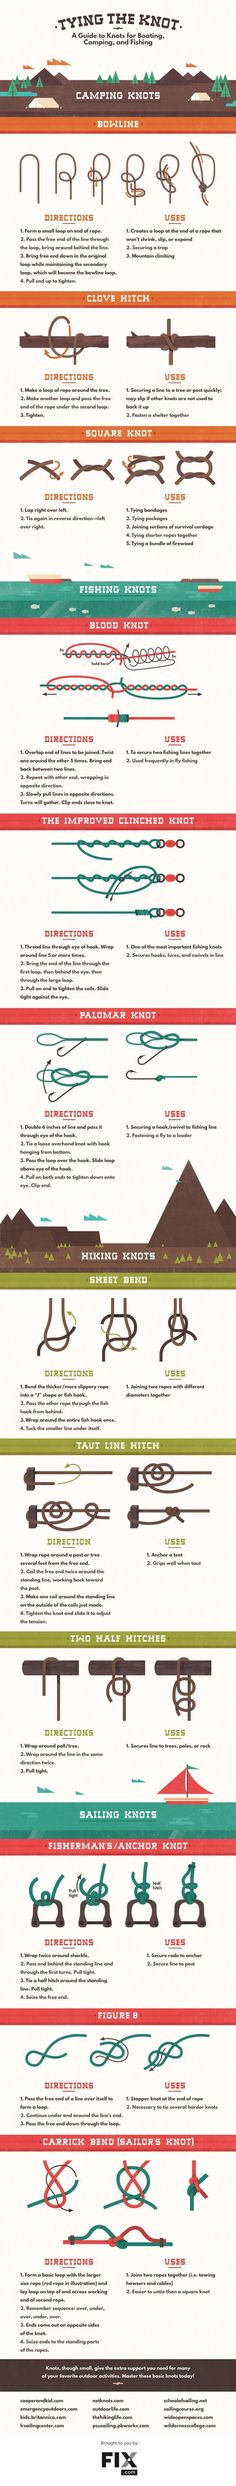 Tying the Knot, A Helpful Infographic Explaining How to Tie Different Knots for Different Jobs